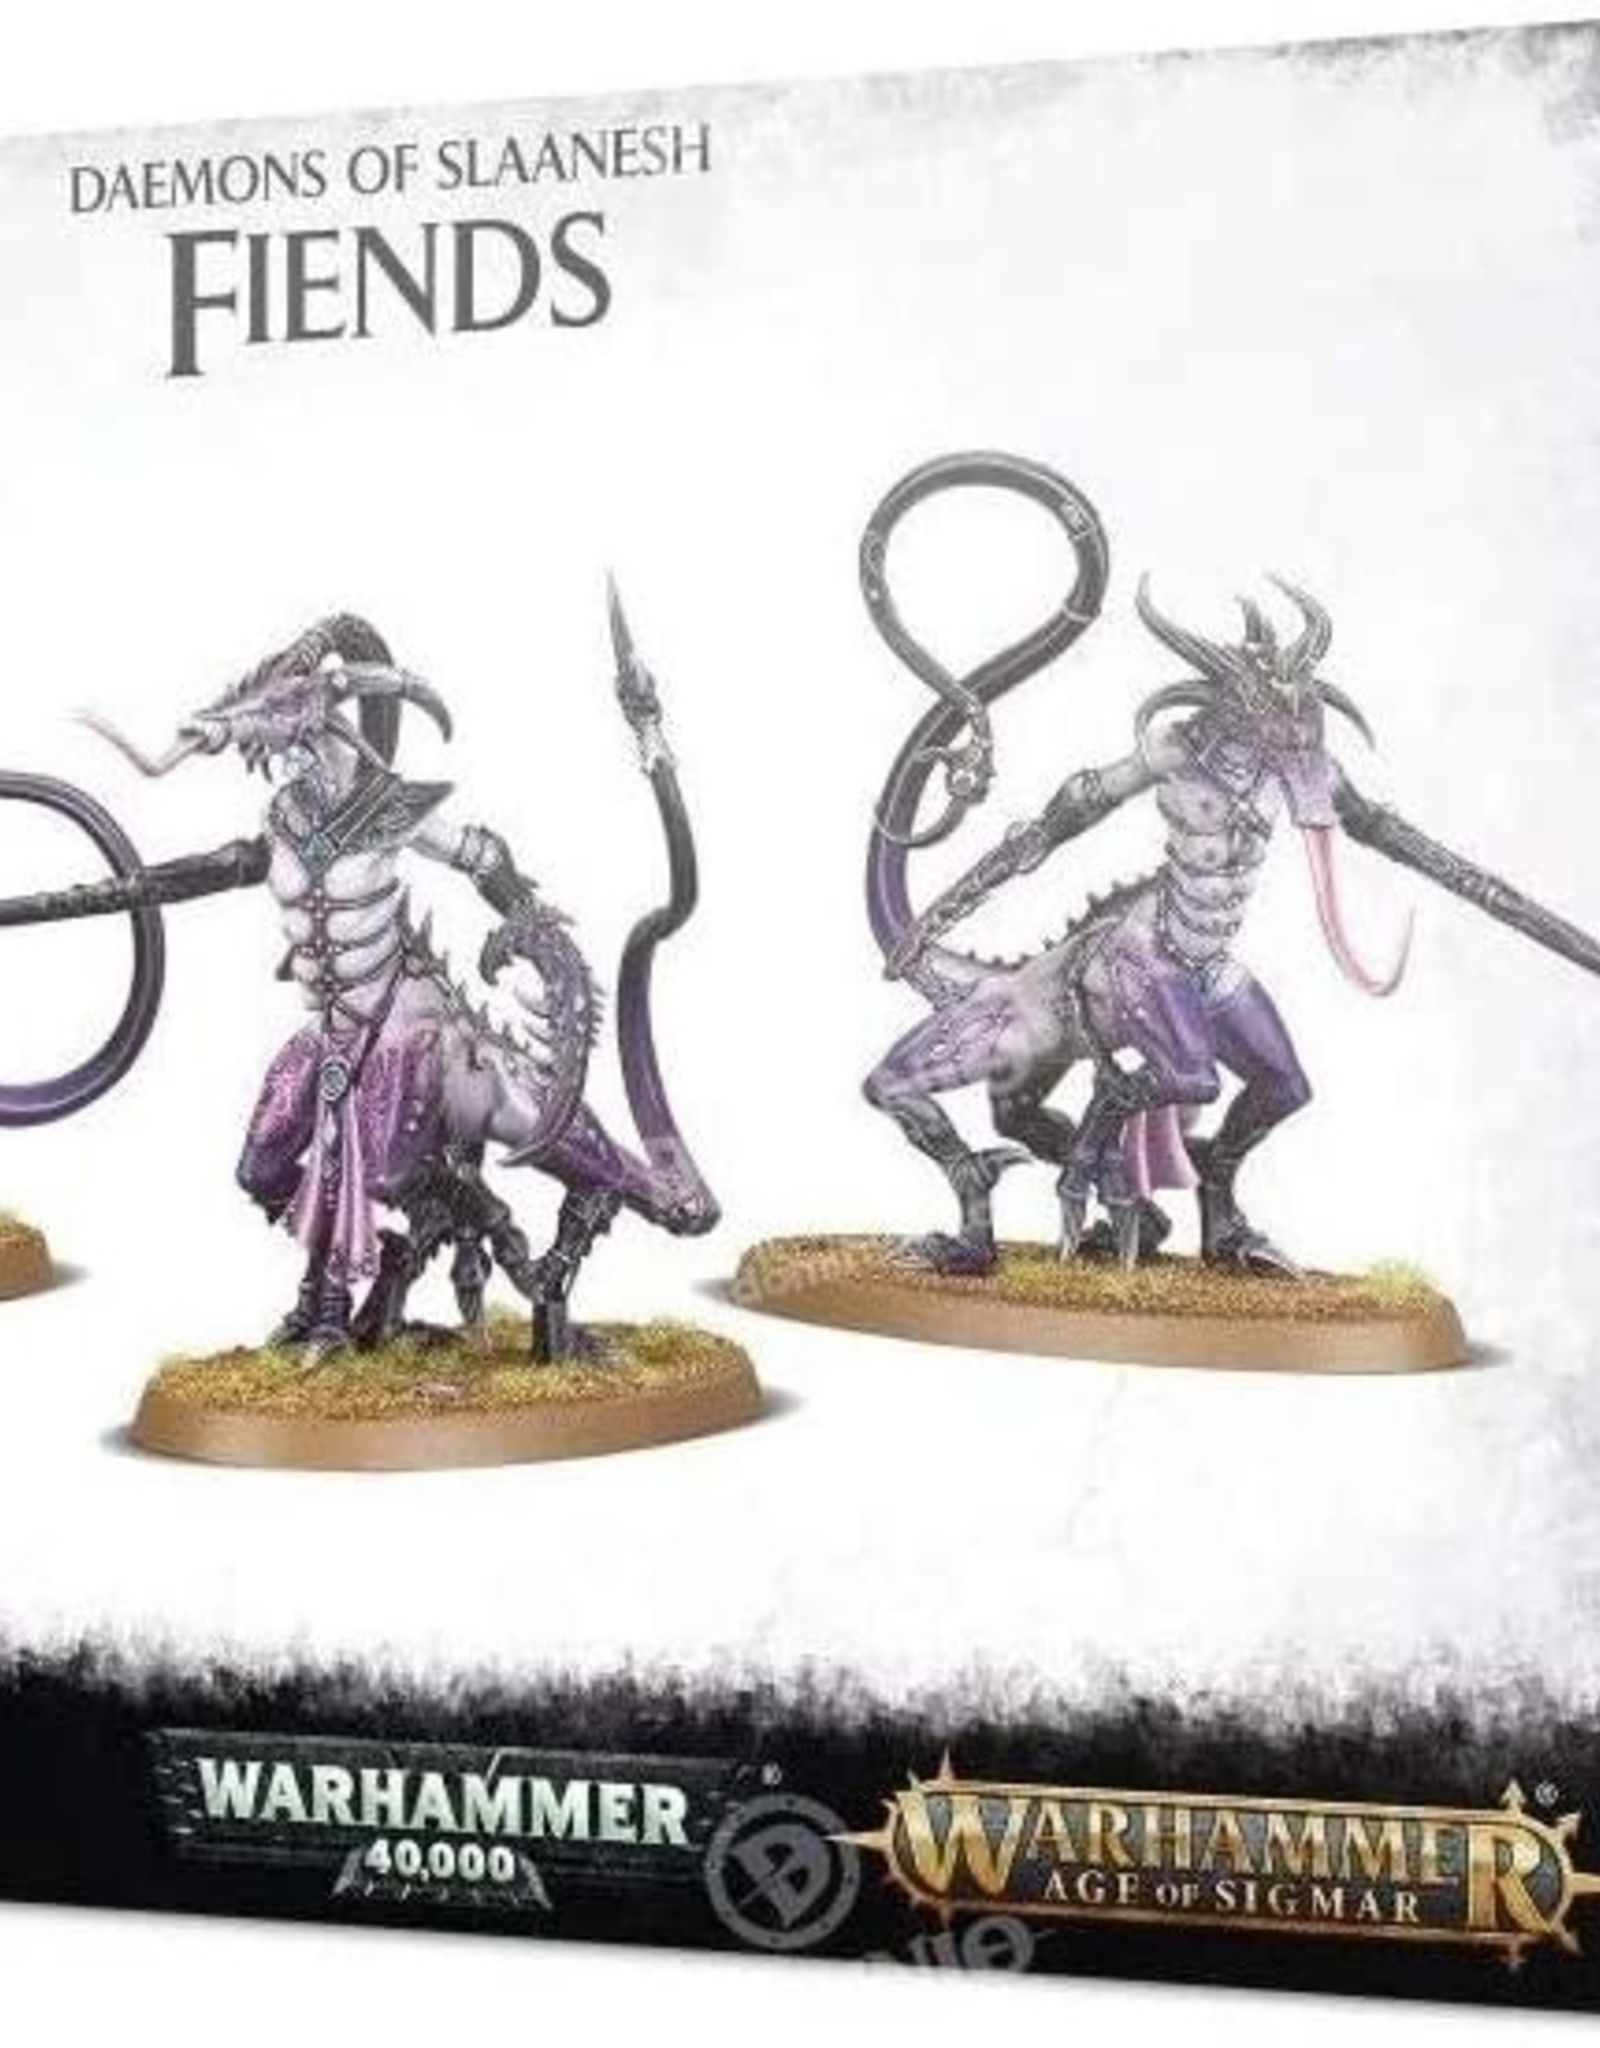 Games Workshop Daemons of Slaanesh: Fiends